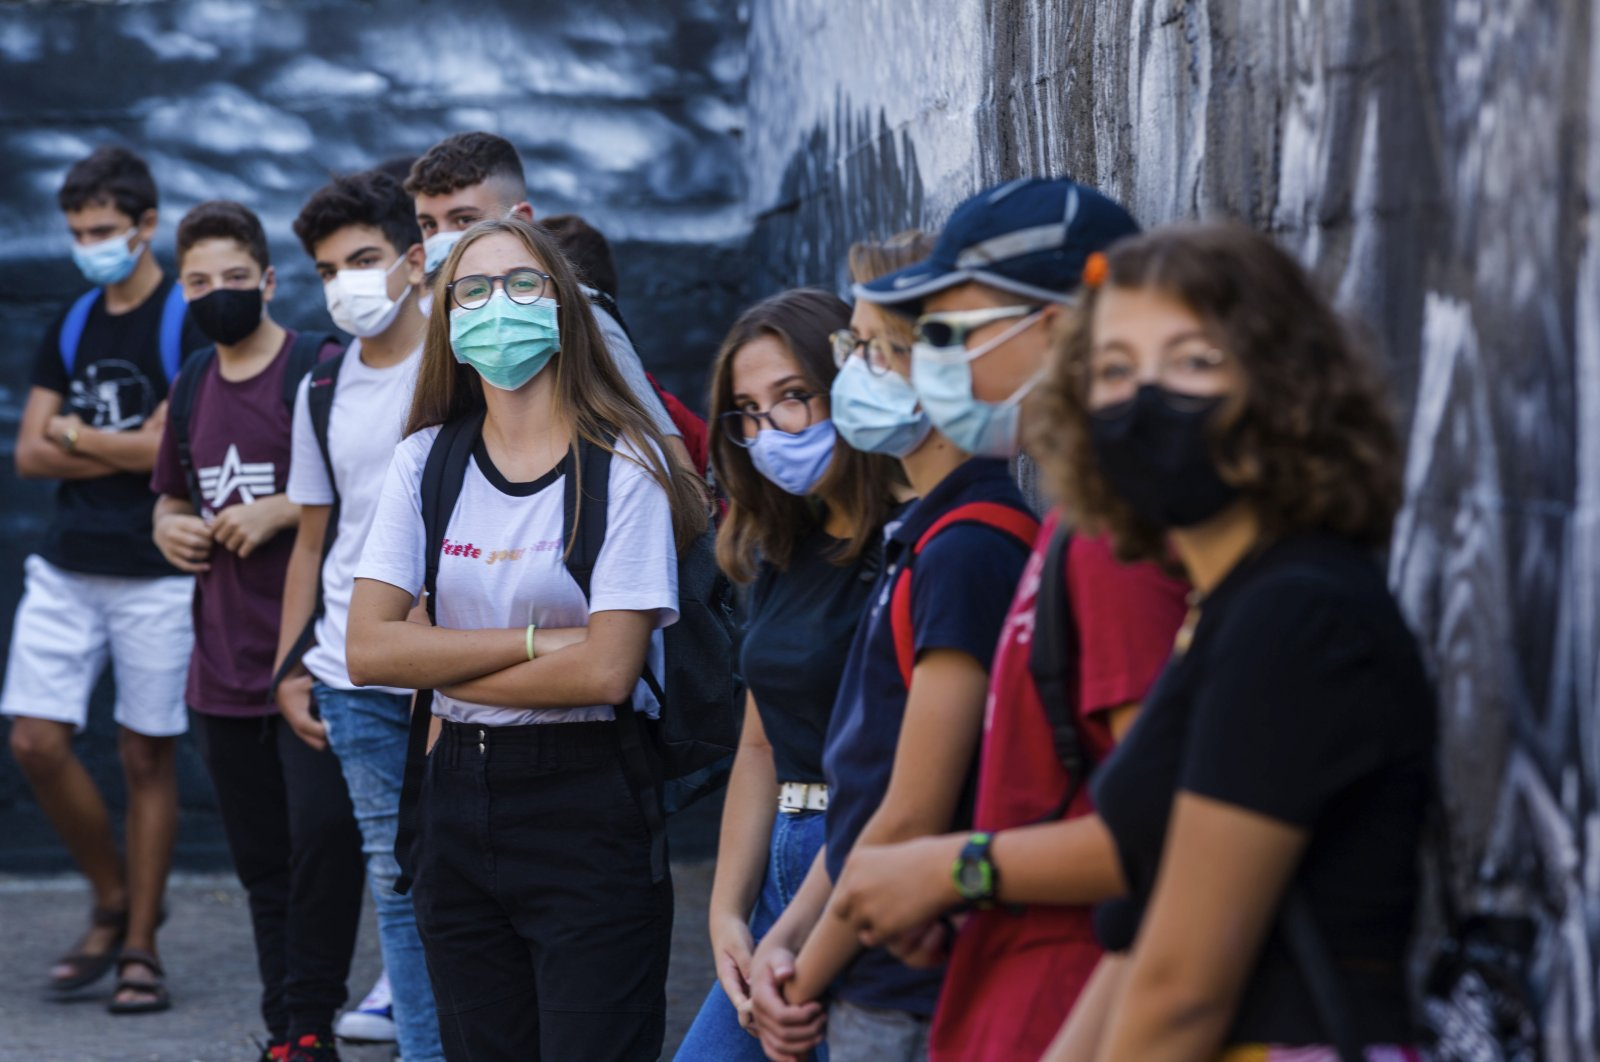 Pupils listen to teachers briefing them on the anti-COVID19 guidelines before they start their first day of school at the high school Giovanni Battista Morgagni in Rome, Monday, Sept. 14, 2020. (AP Photo)